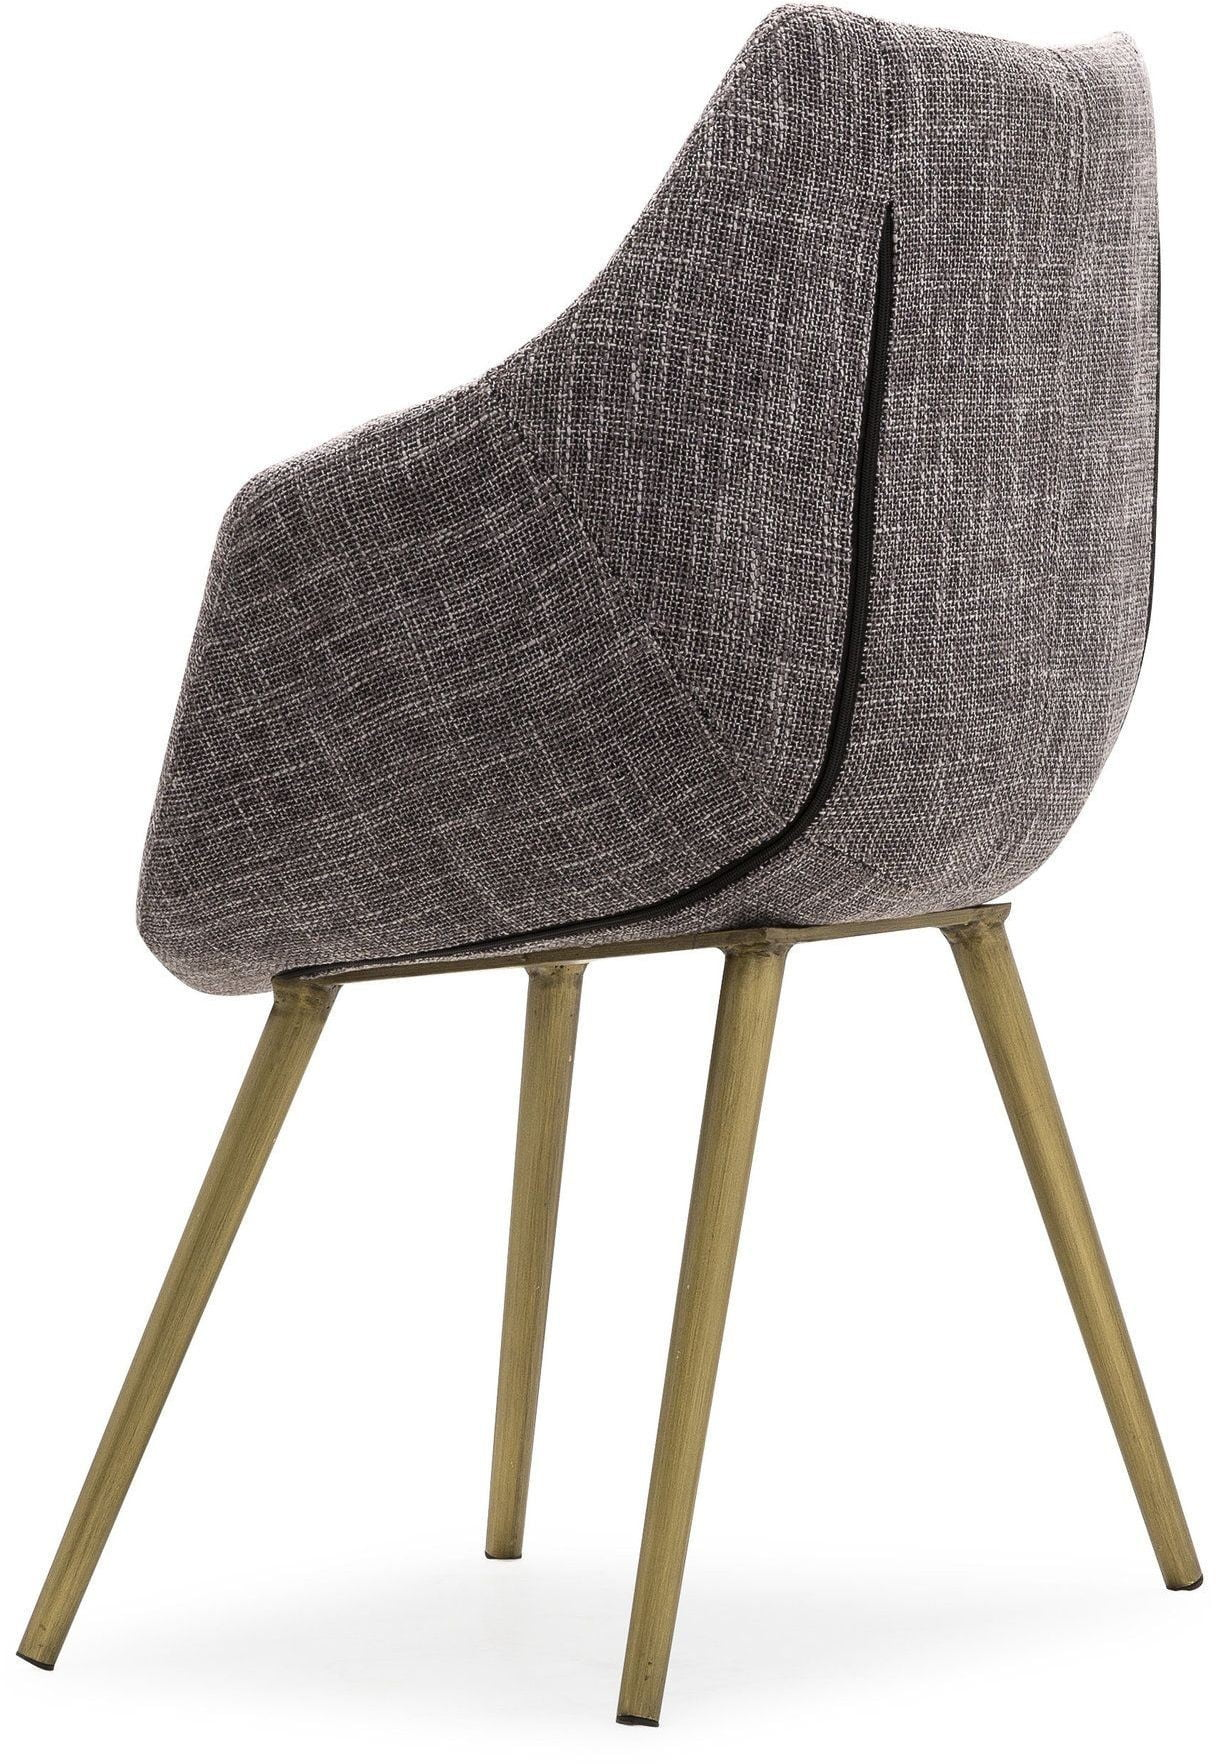 Tweed Chair Finn Grey Tweed Chair From Tov Coleman Furniture